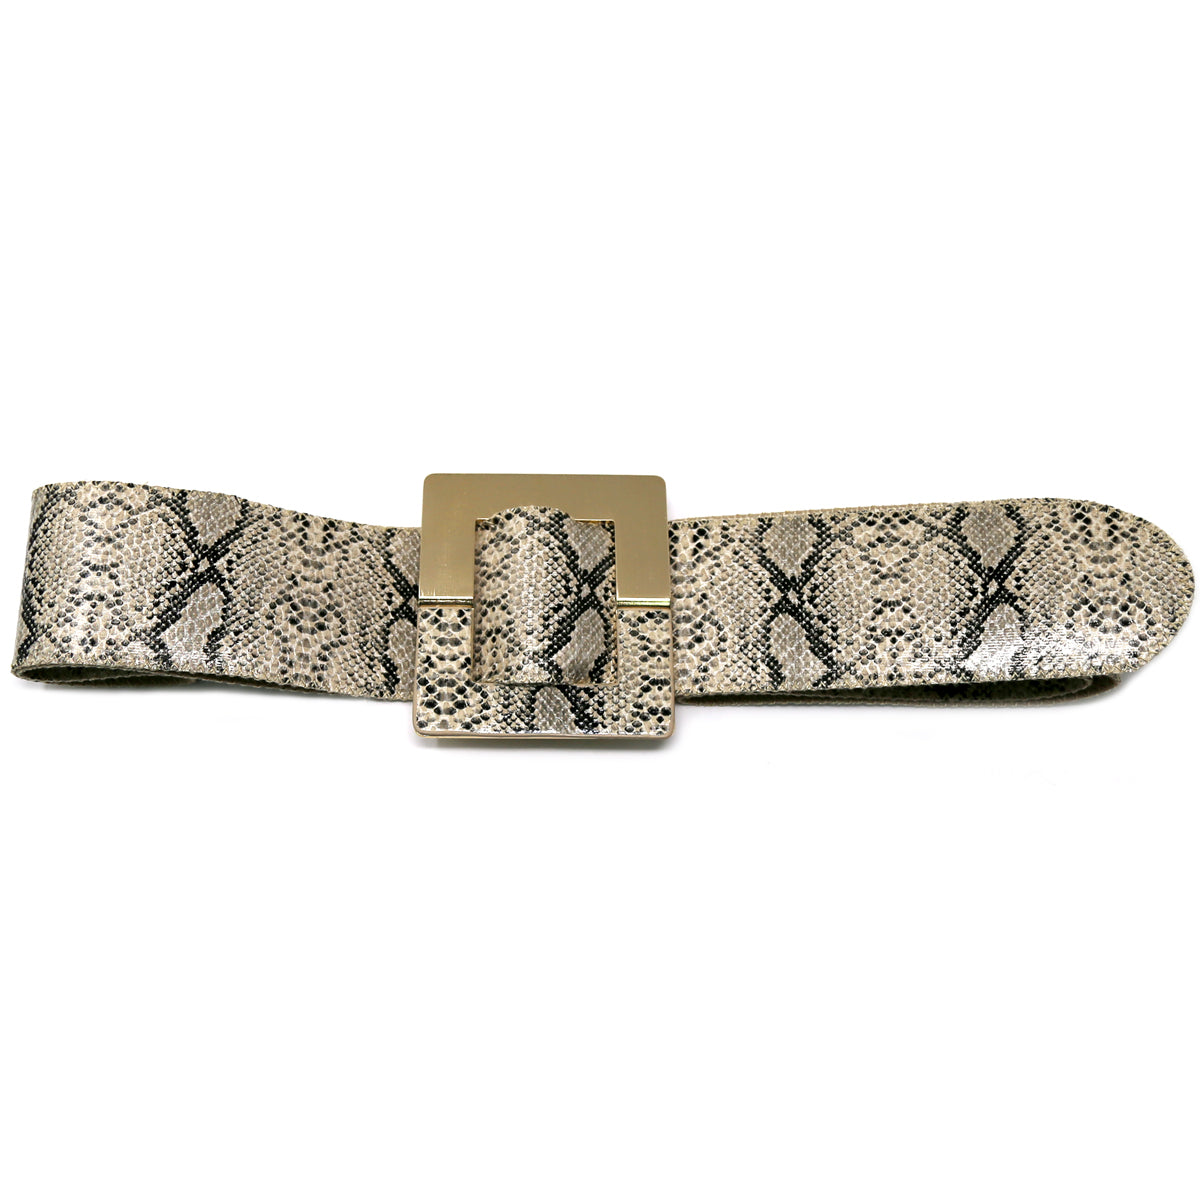 Snake Skin Print Faux Leather Square Buckle Belt